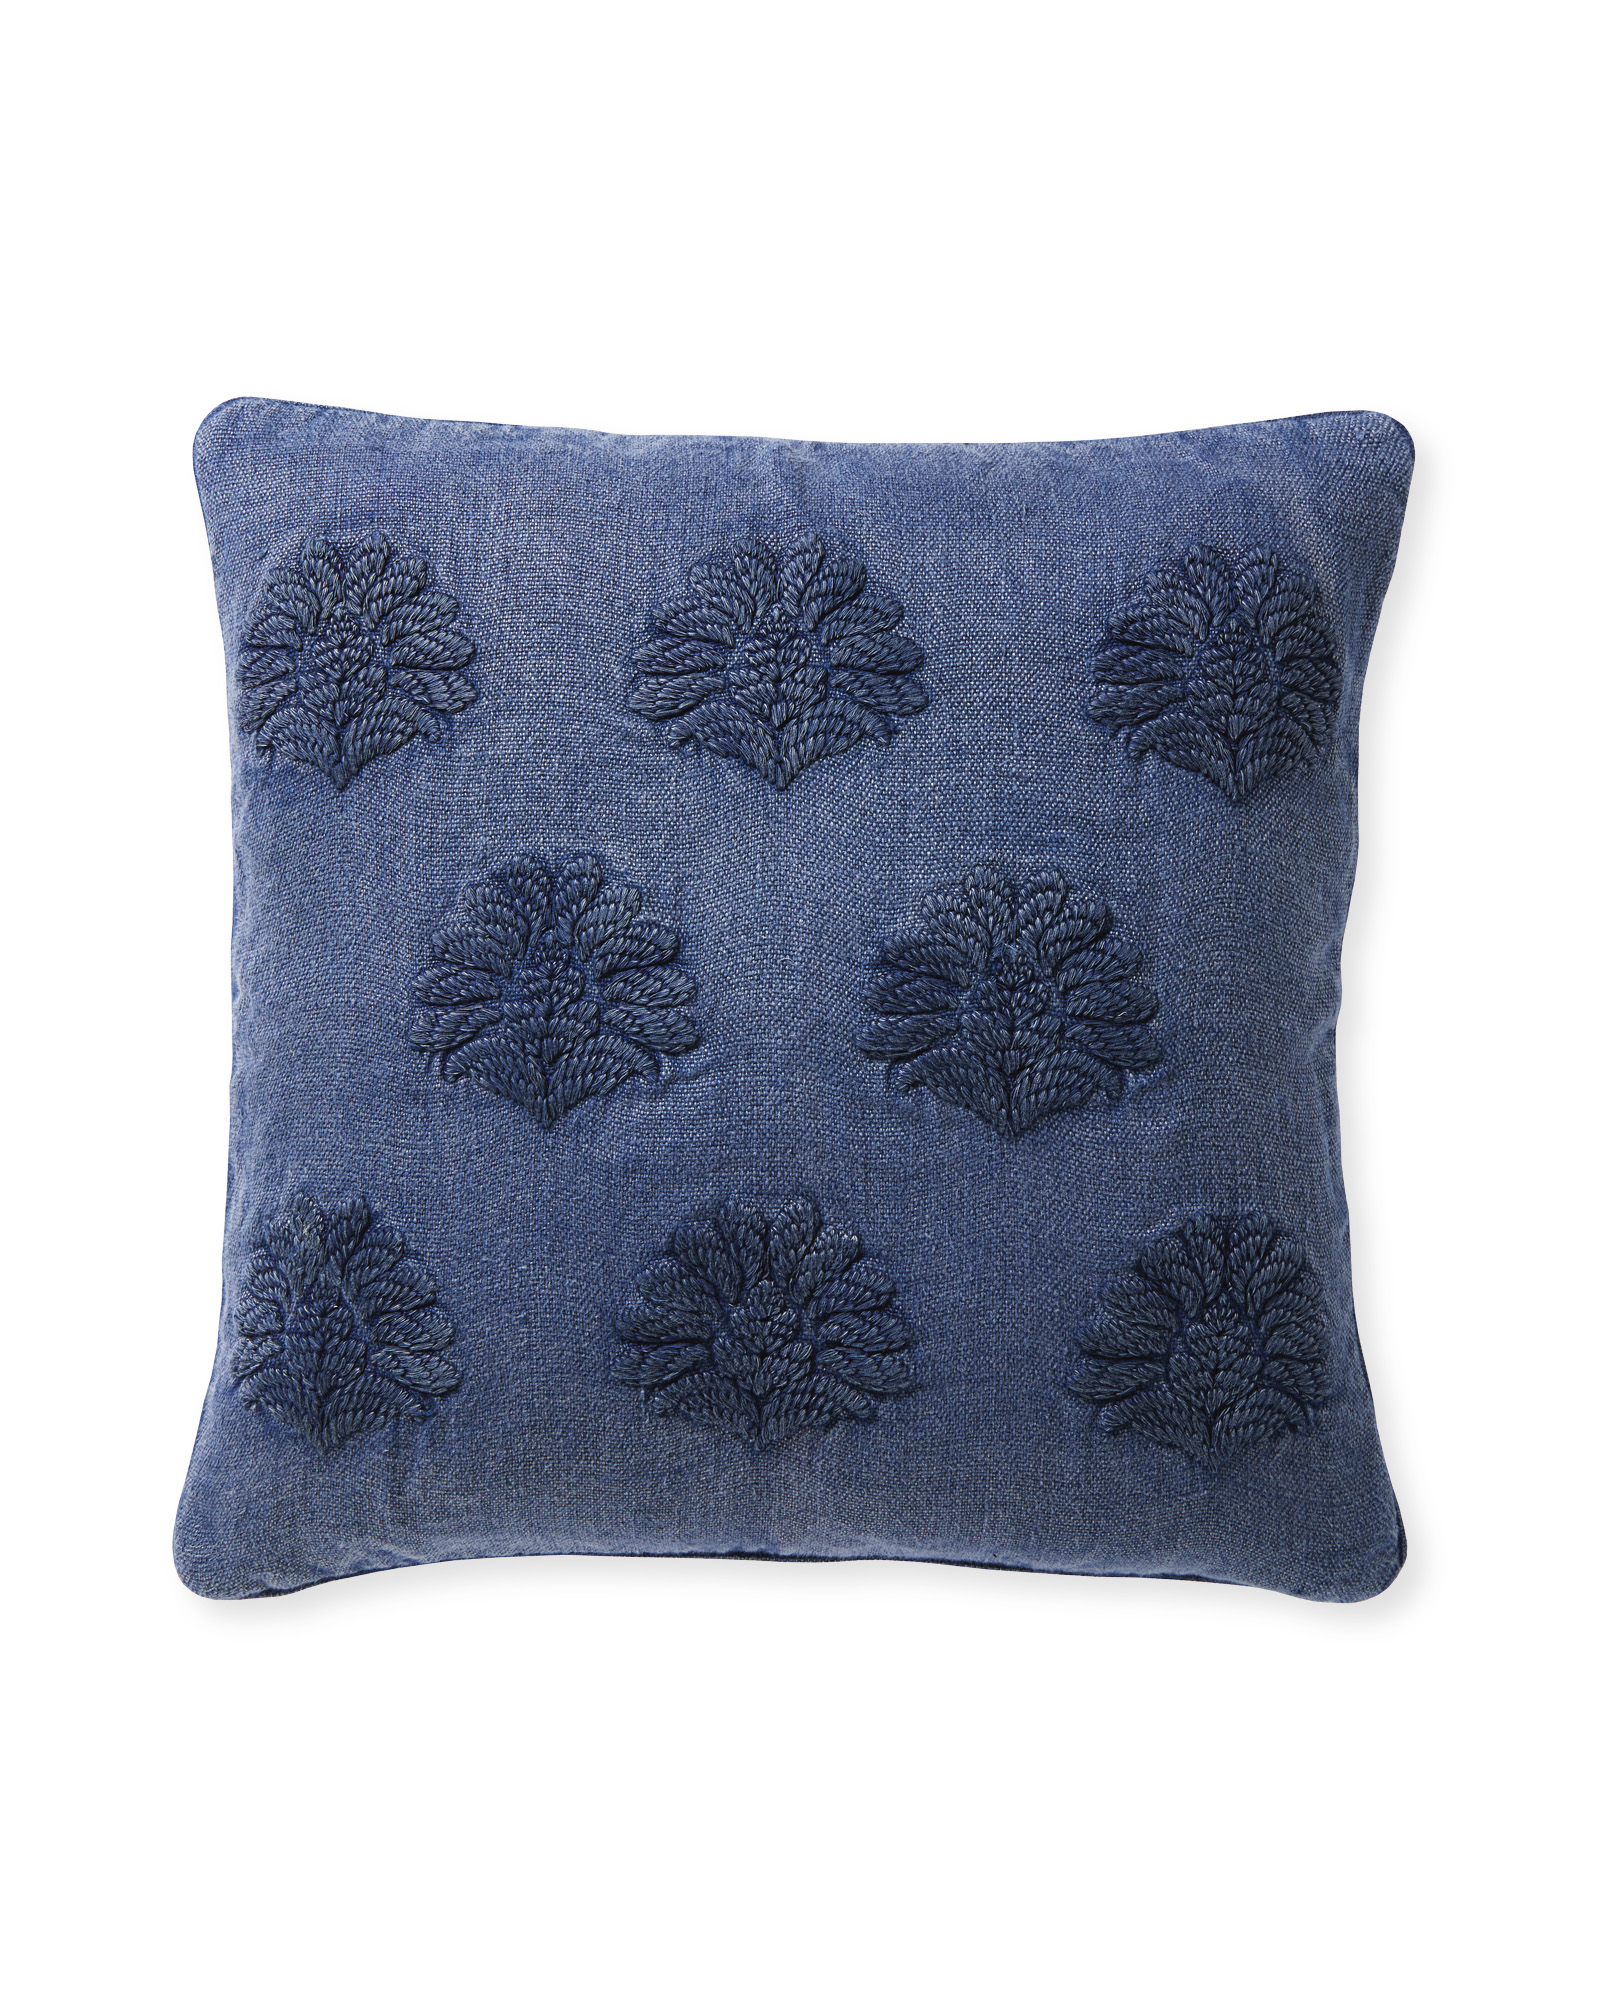 Miramonte Pillow Cover, Vintage Indigo